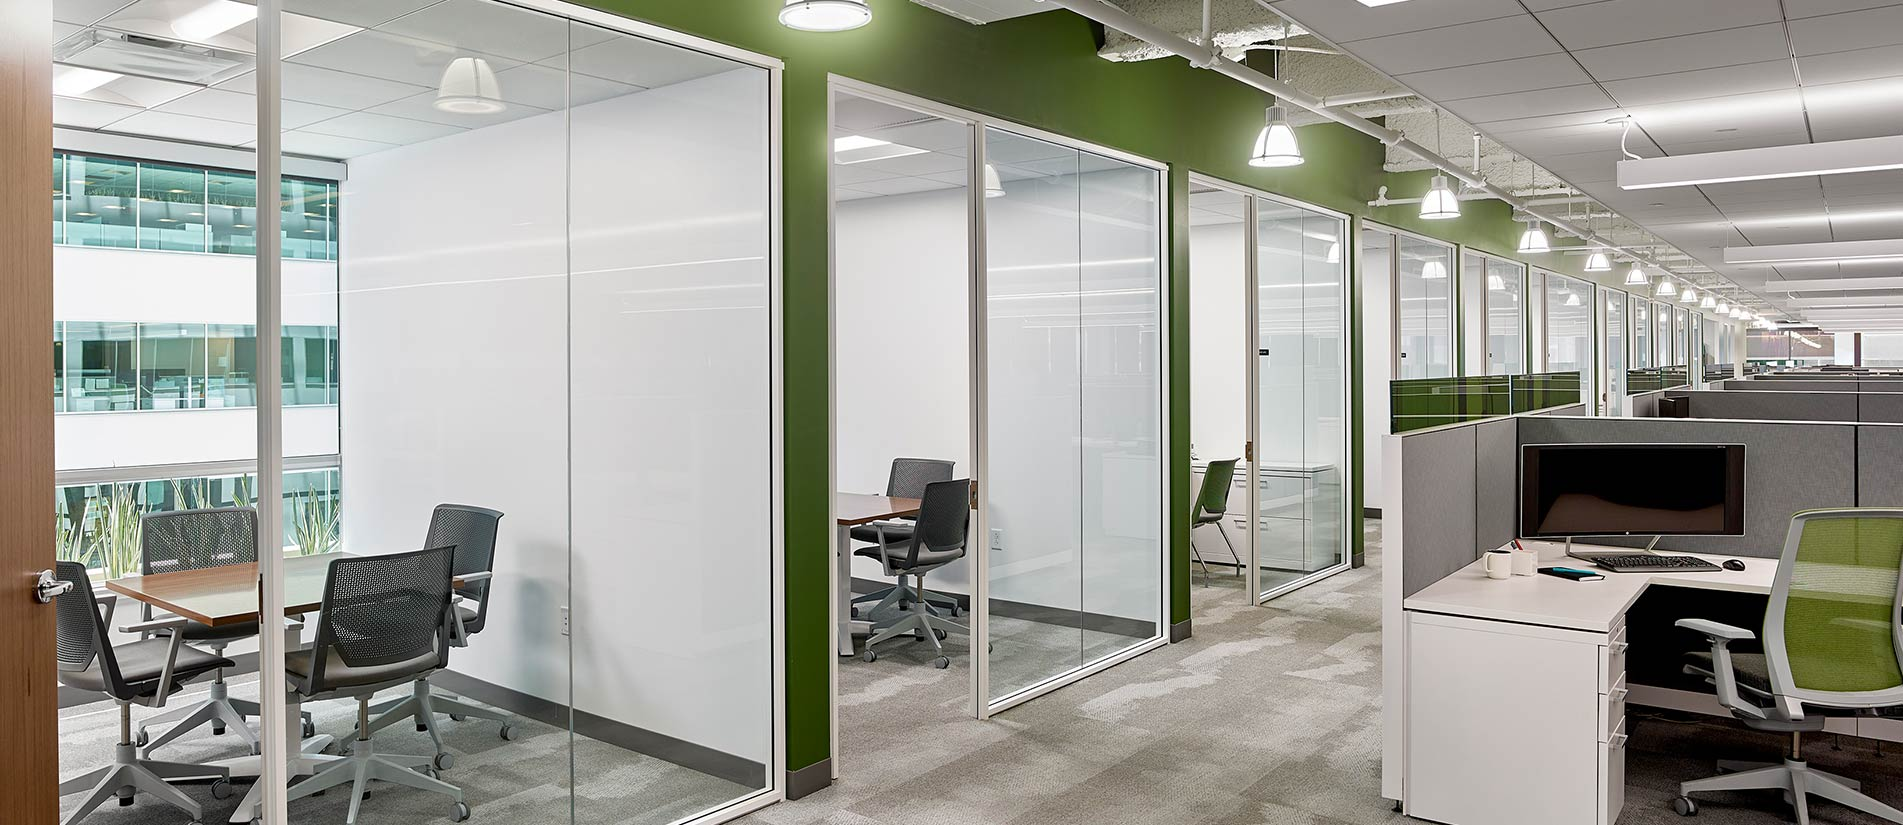 One LP glass office wall system creates meeting rooms divided by glass doors and partition walls